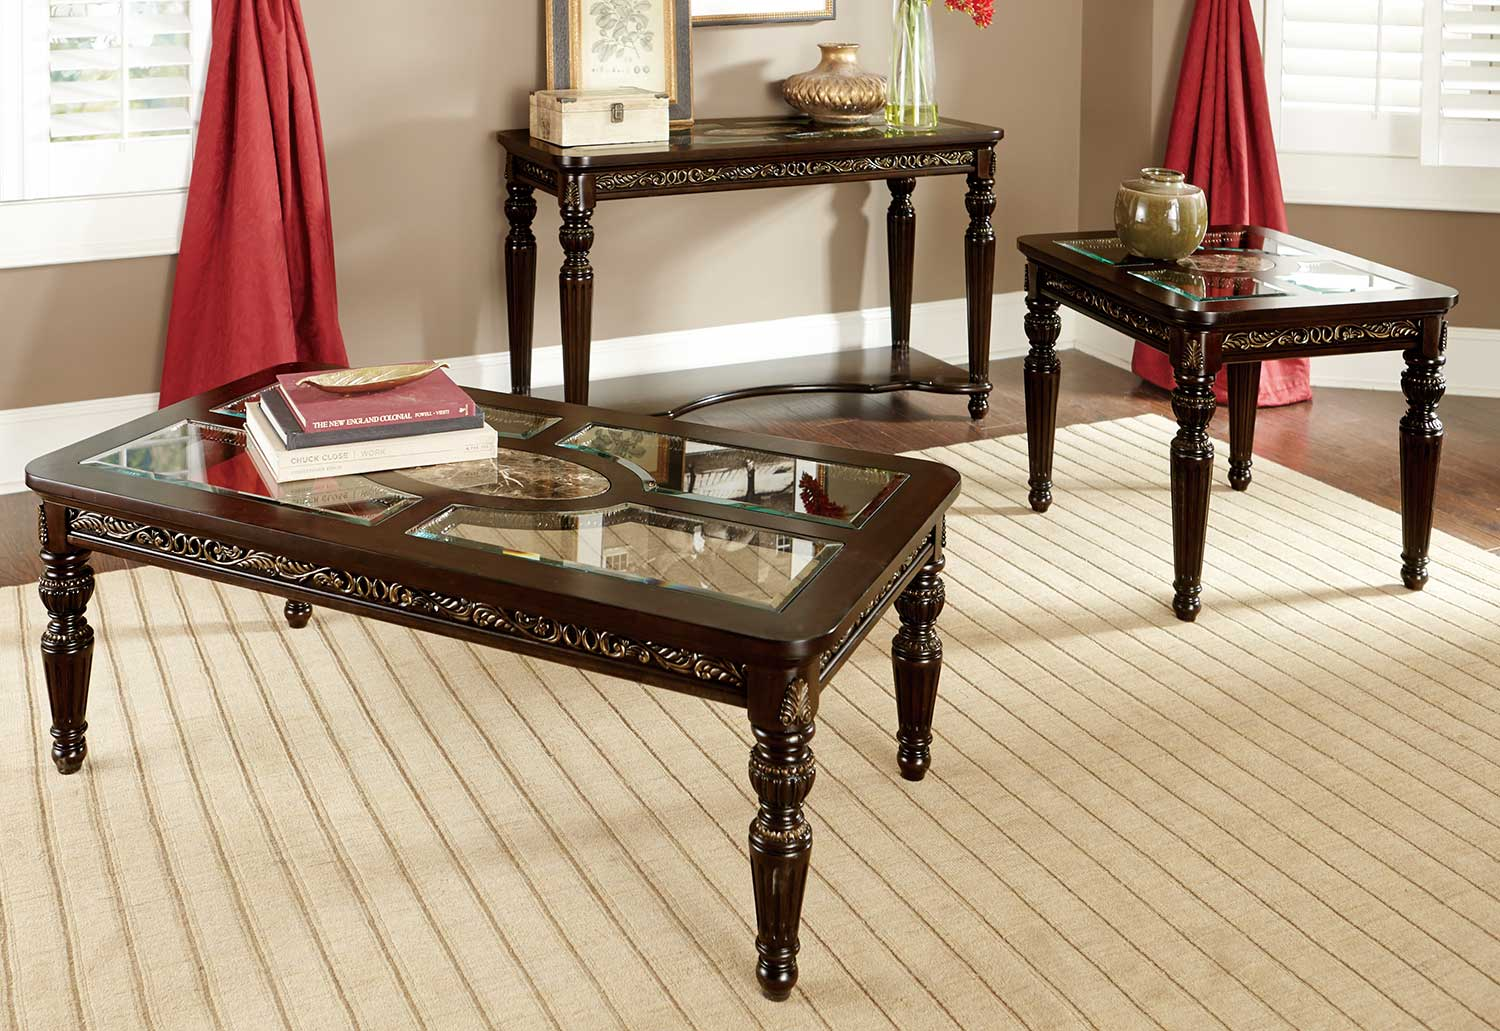 Charming Homelegance Russian Hill Coffee Table Set   Cherry With Glass Insert And  Faux Marble Inlay